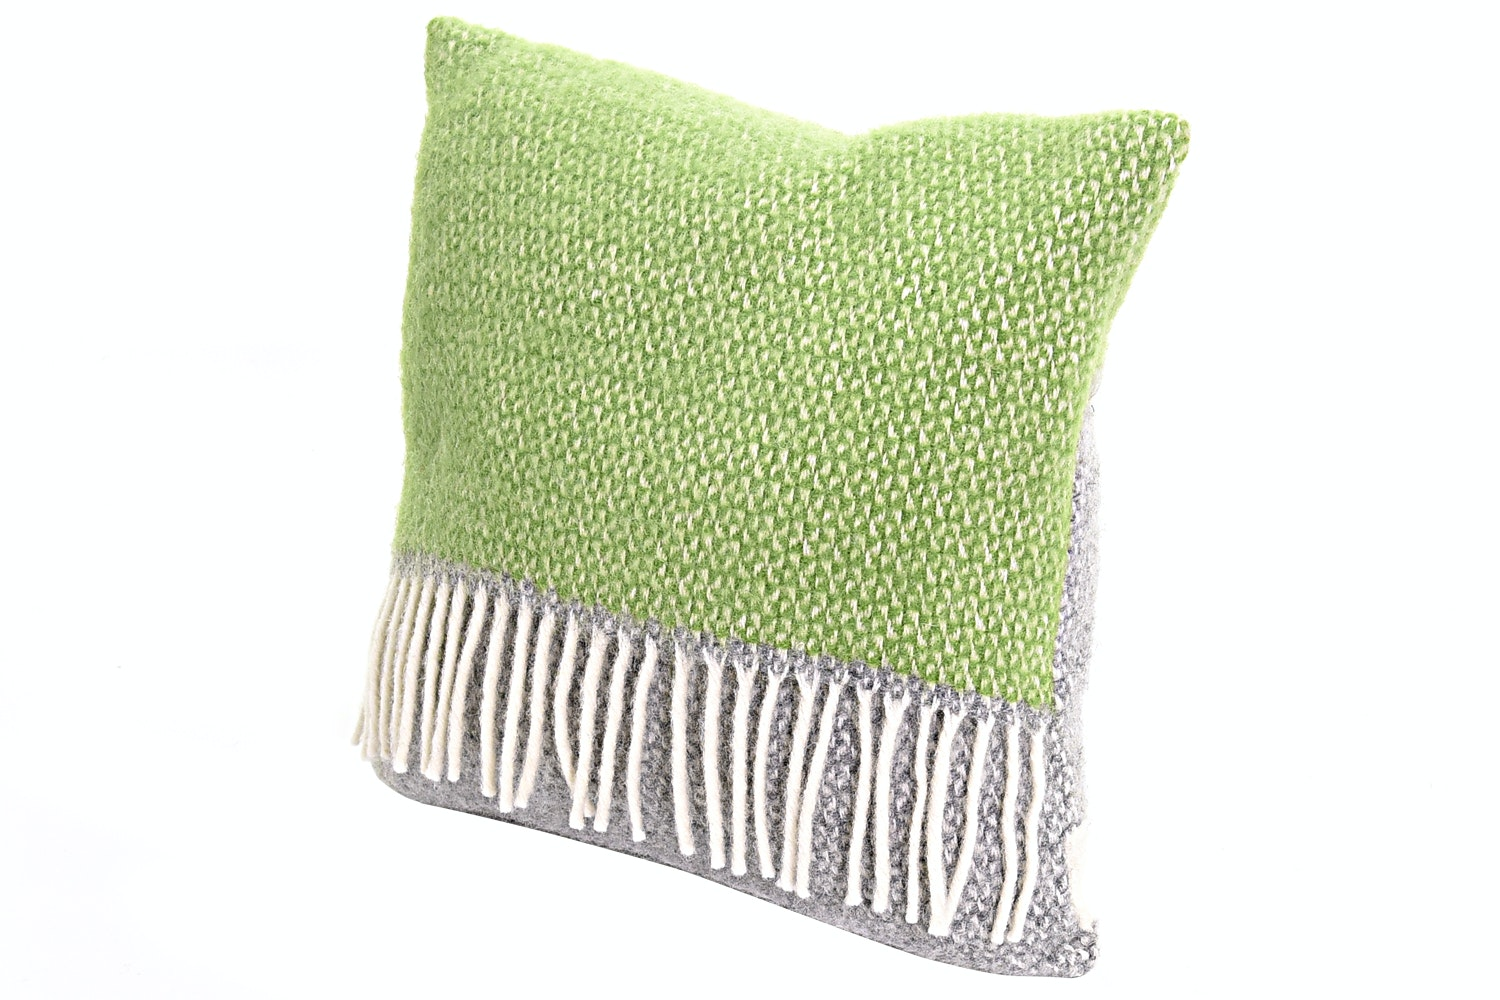 Illusion Panel Cushion Grey/Green